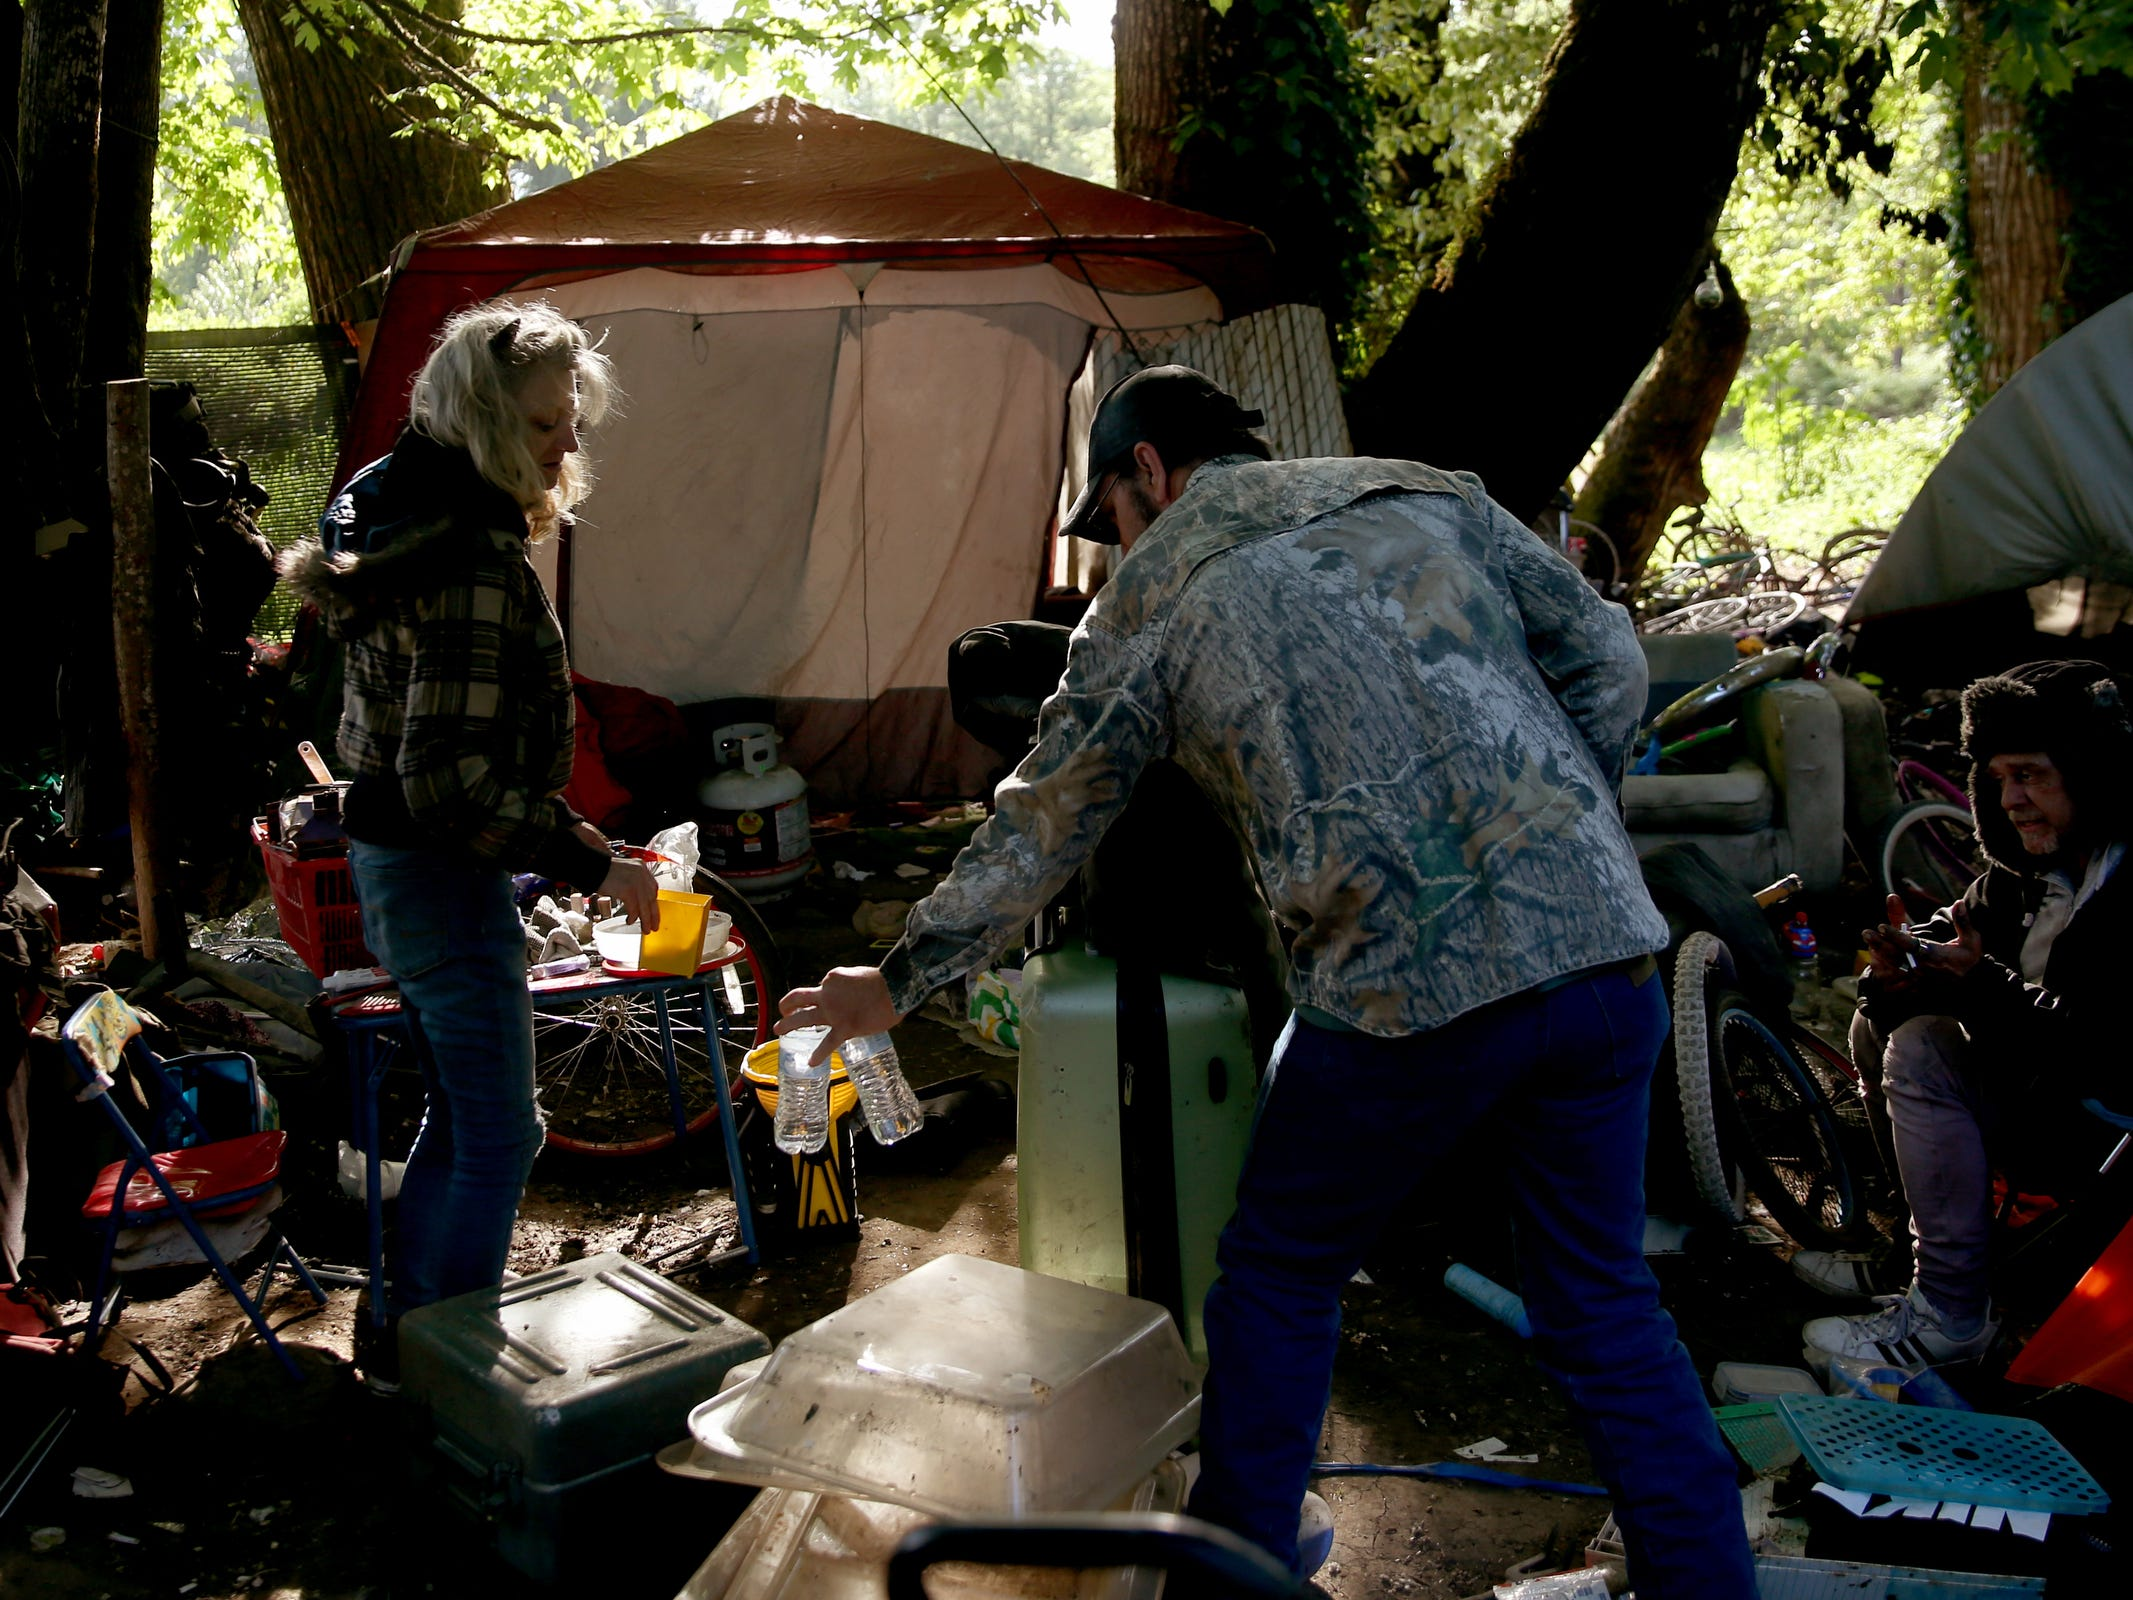 Art Scaglione, a volunteer and advocate for the homeless, brings bottles of water into a homeless camp near Wallace Marine Park in West Salem on May 7, 2019. Signs were posted throughout the camp recently stating personal property must be removed or it will be taken by the landowner and its designated agent starting May 7. An eviction can't be enforced until a court approves it.